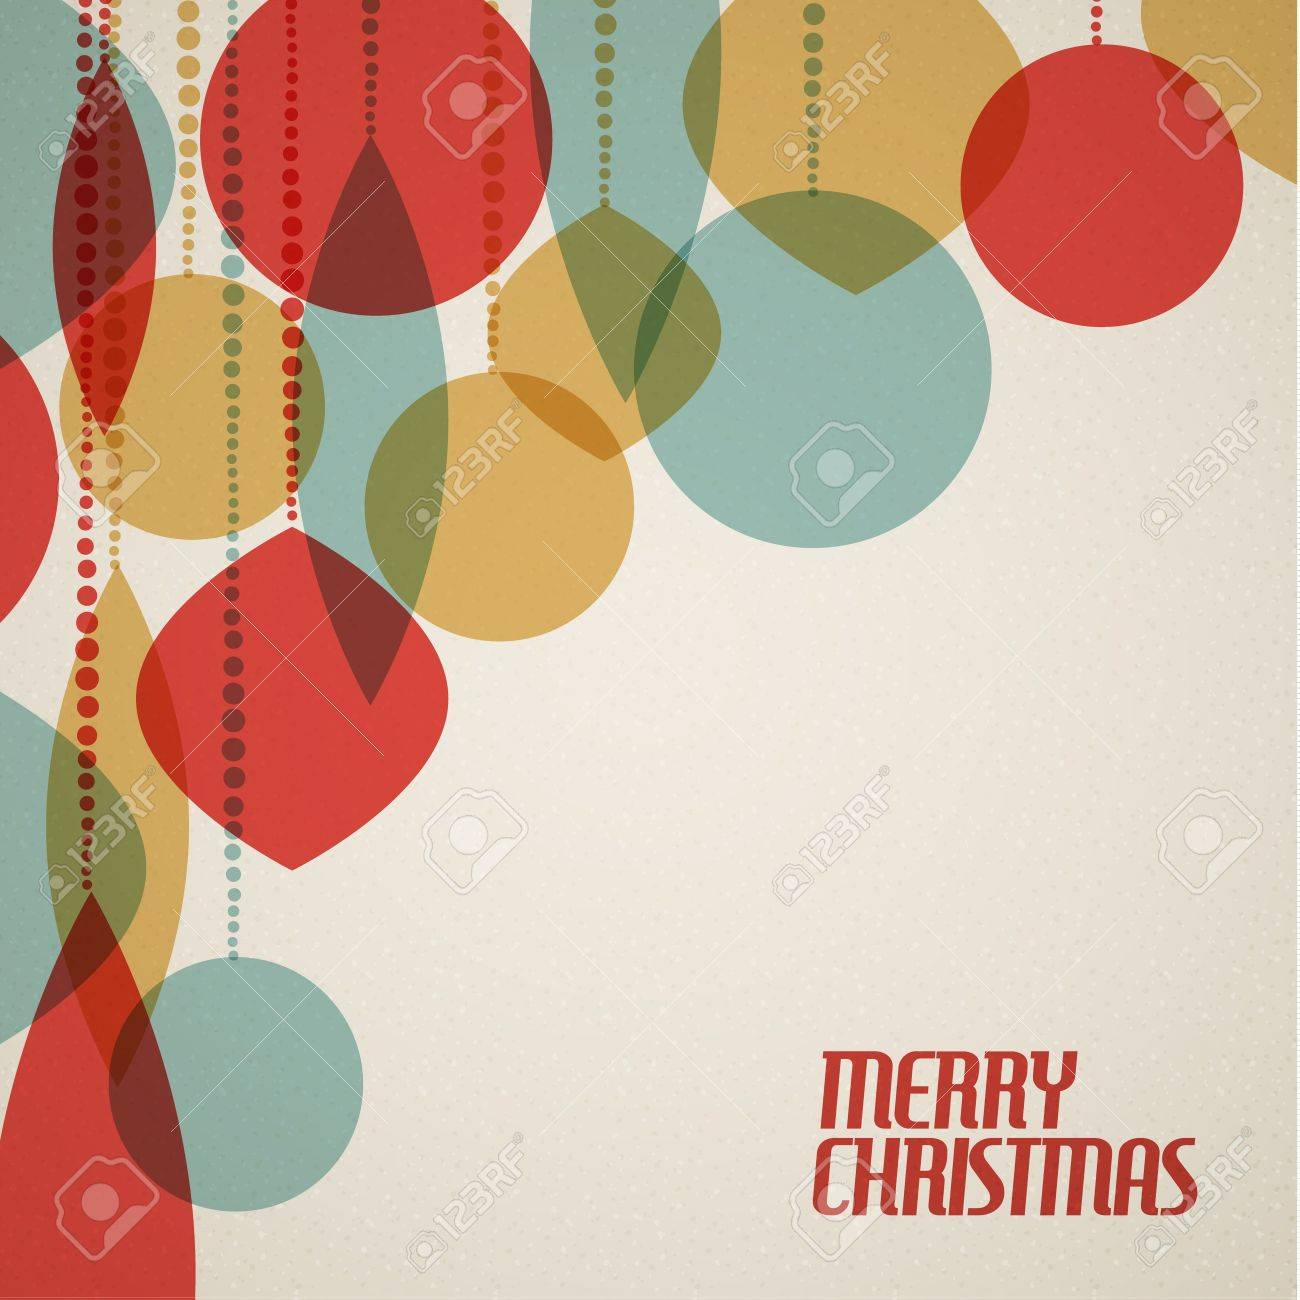 Retro Christmas Card With Christmas Decorations - Teal, Brown ...